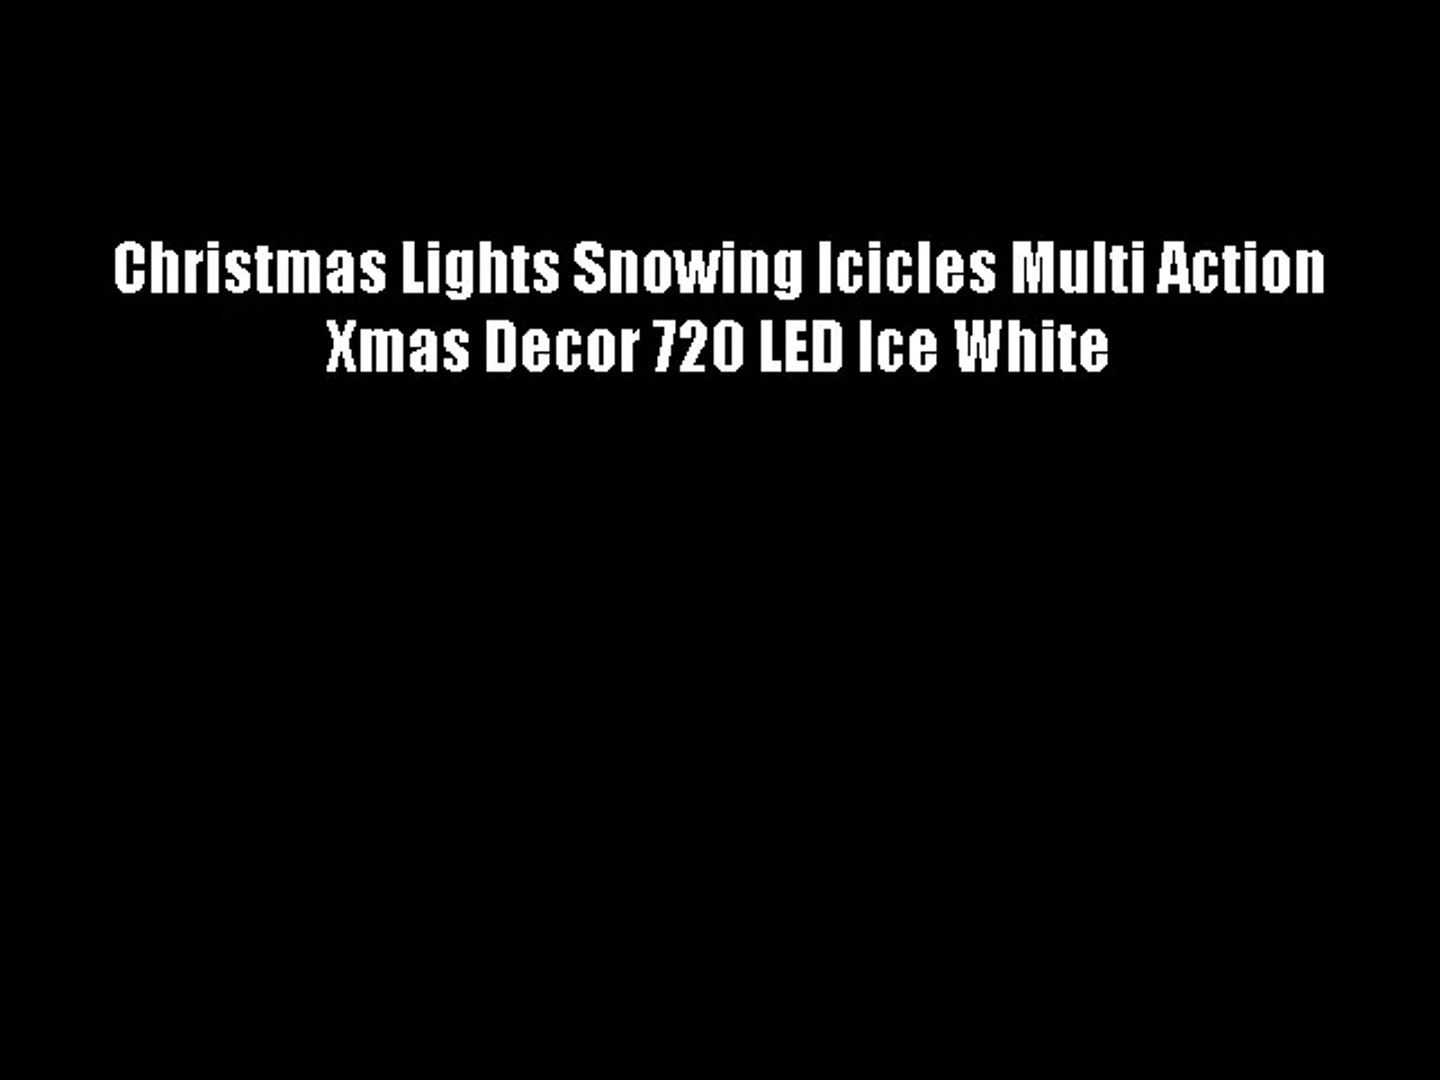 Snowing Christmas Lights.Christmas Lights Snowing Icicles Multi Action Xmas Decor 720 Led Ice White